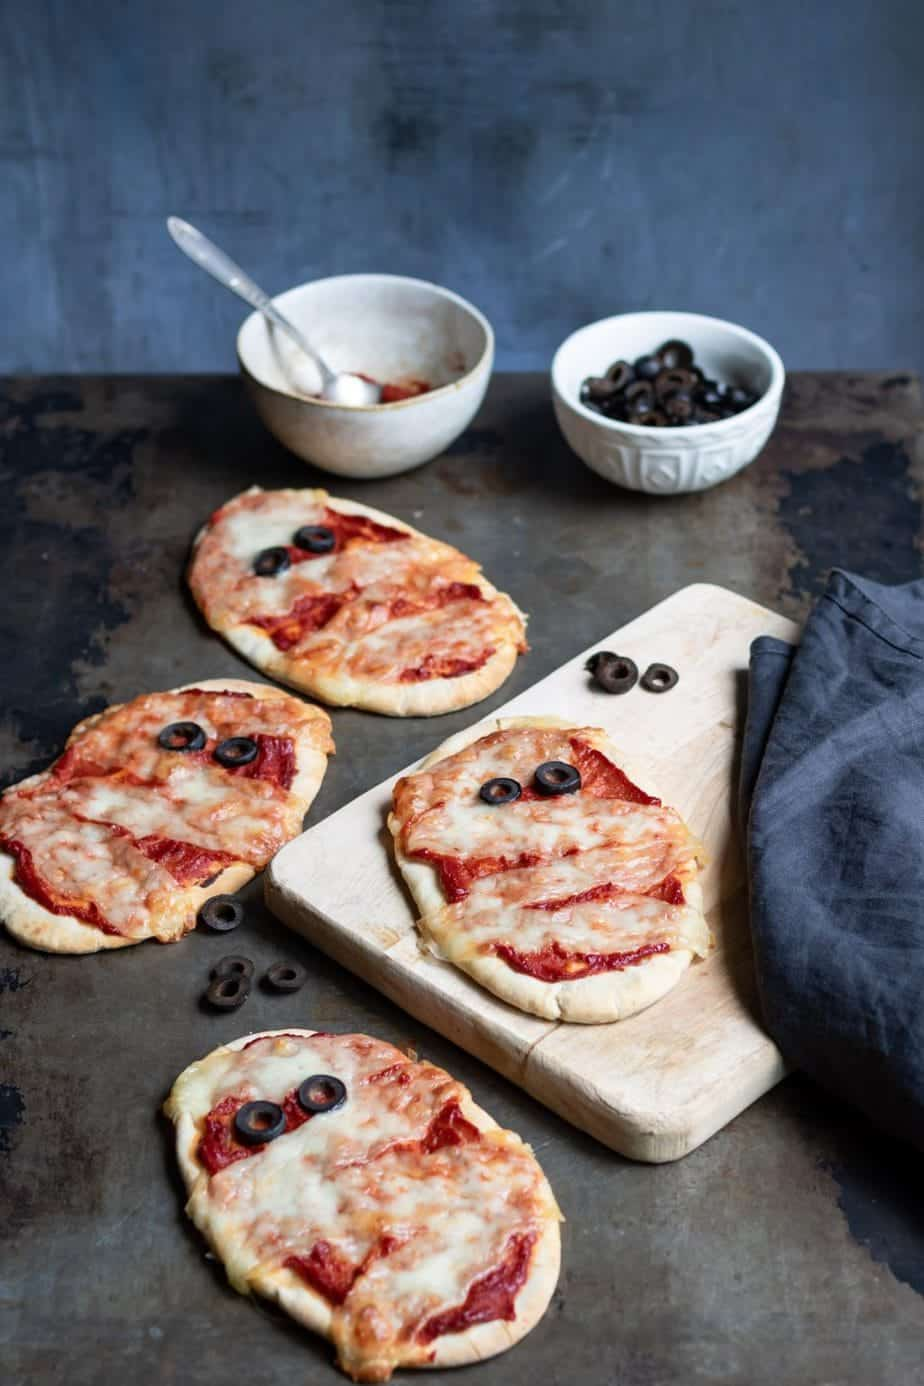 Mummy Halloween pizzas. The cheese gives the appearance of bandages and there are olives for eyes.